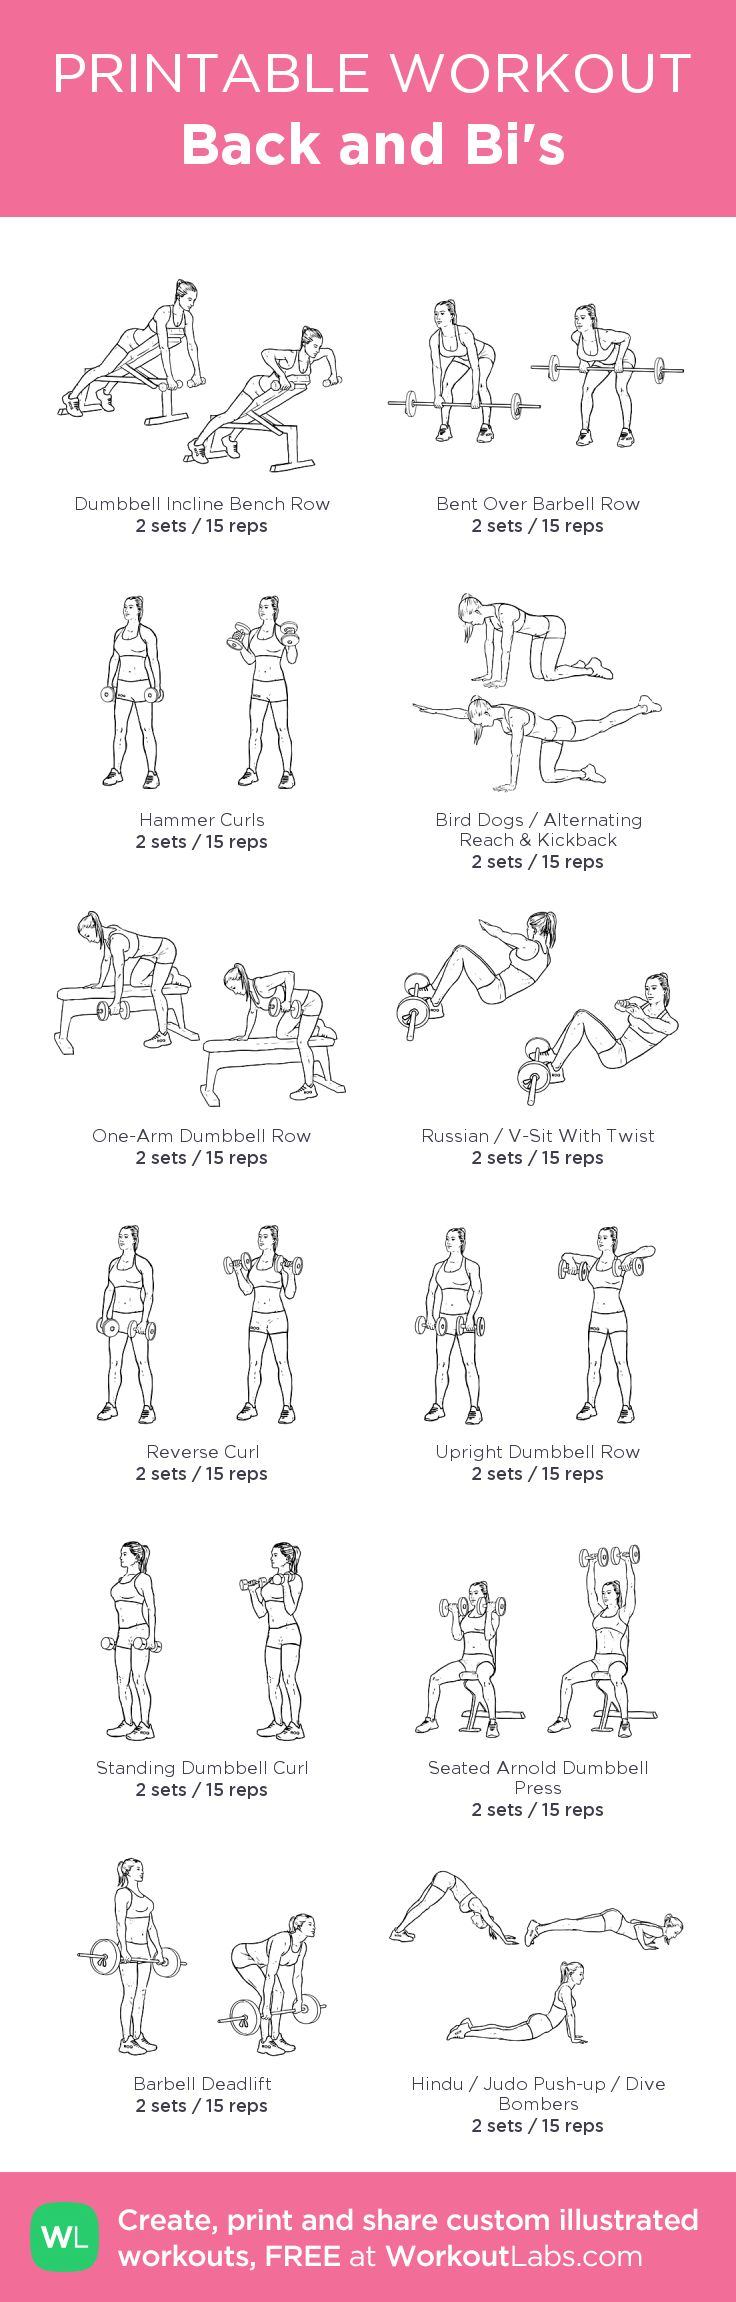 Back and Bi's: my visual workout created at WorkoutLabs.com